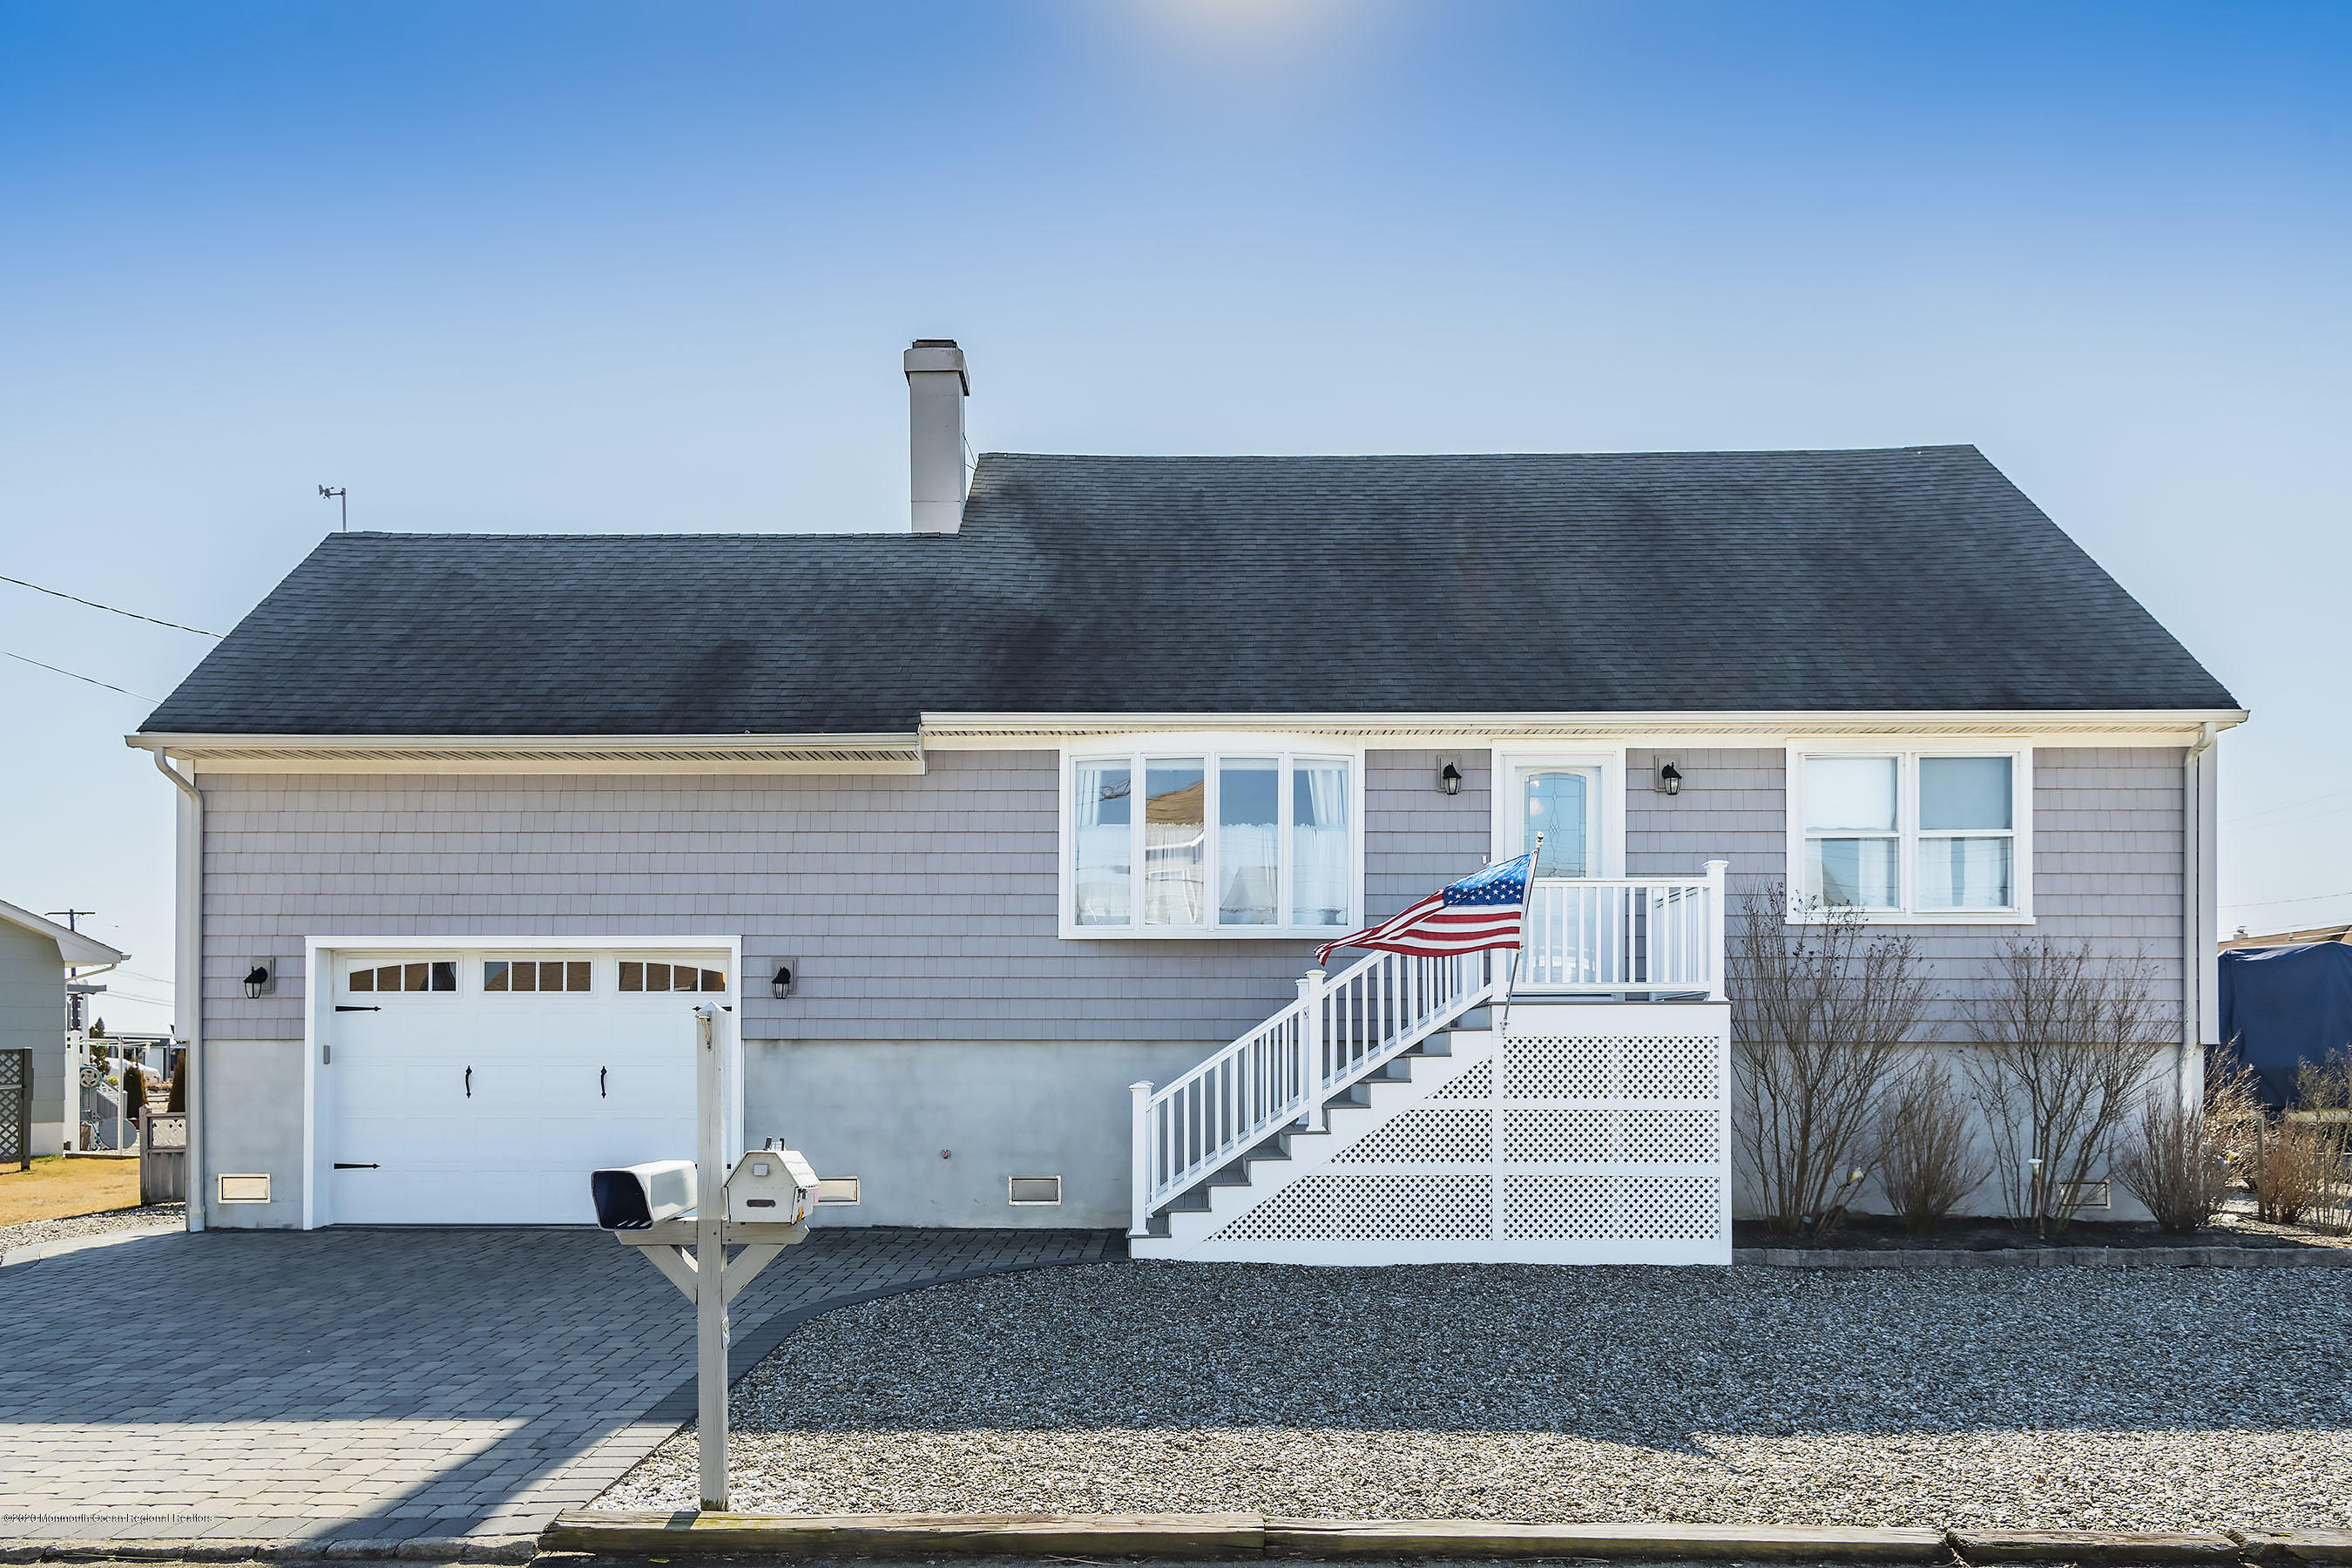 For Sale 236 Cypress Drive Bayville Nj 08721 4 Beds 2 Full Baths 454000 Mls 22007646